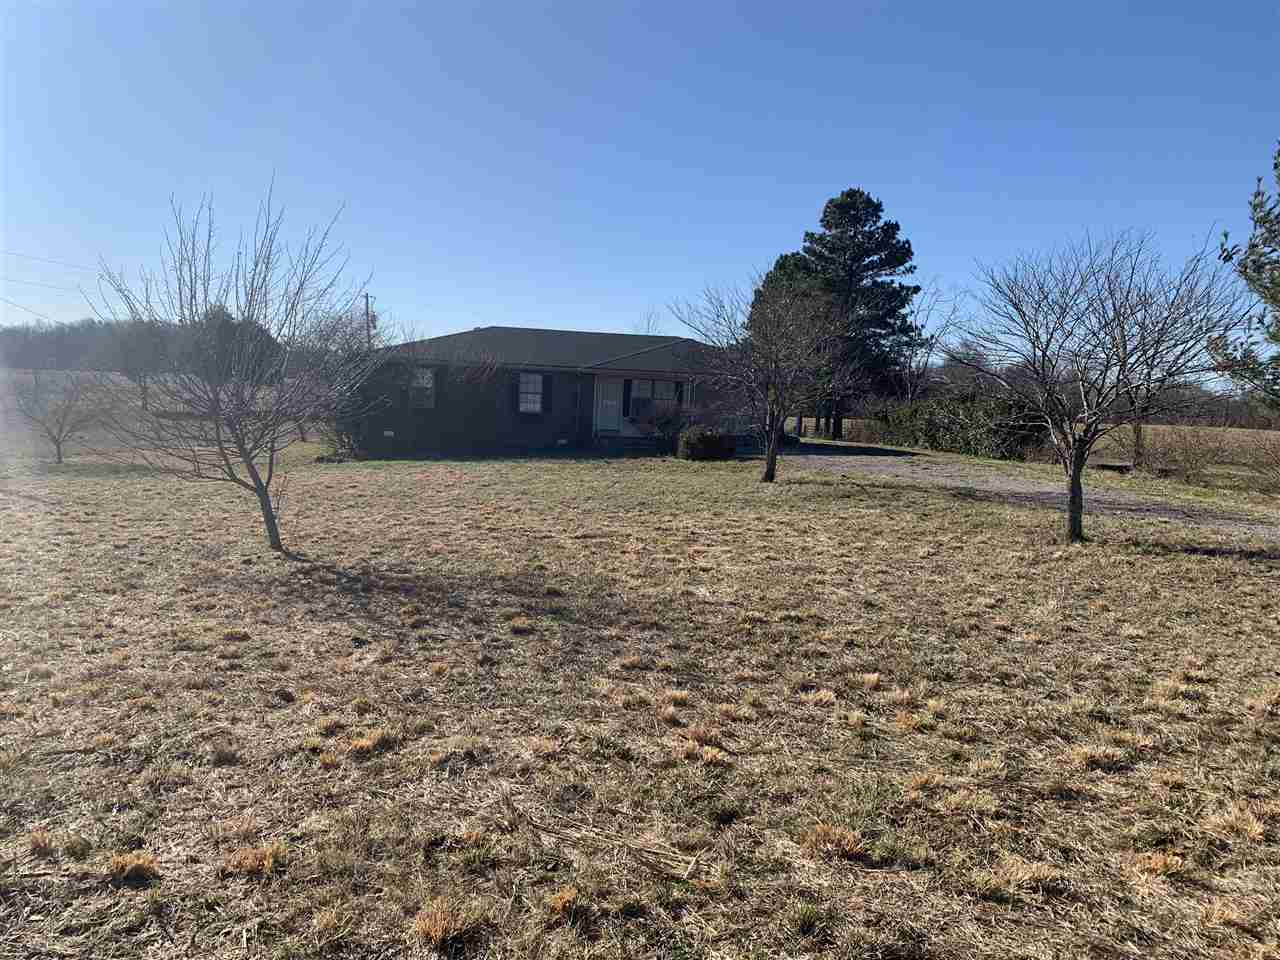 Move in ready! 2 bed, 3 baths, 1300+/- sqft home in North Butler County.  This home sits on a very peaceful .7 acre country lot. The interior of the home has updated carpet and a large master suite.  Priced to sell at $69,900!